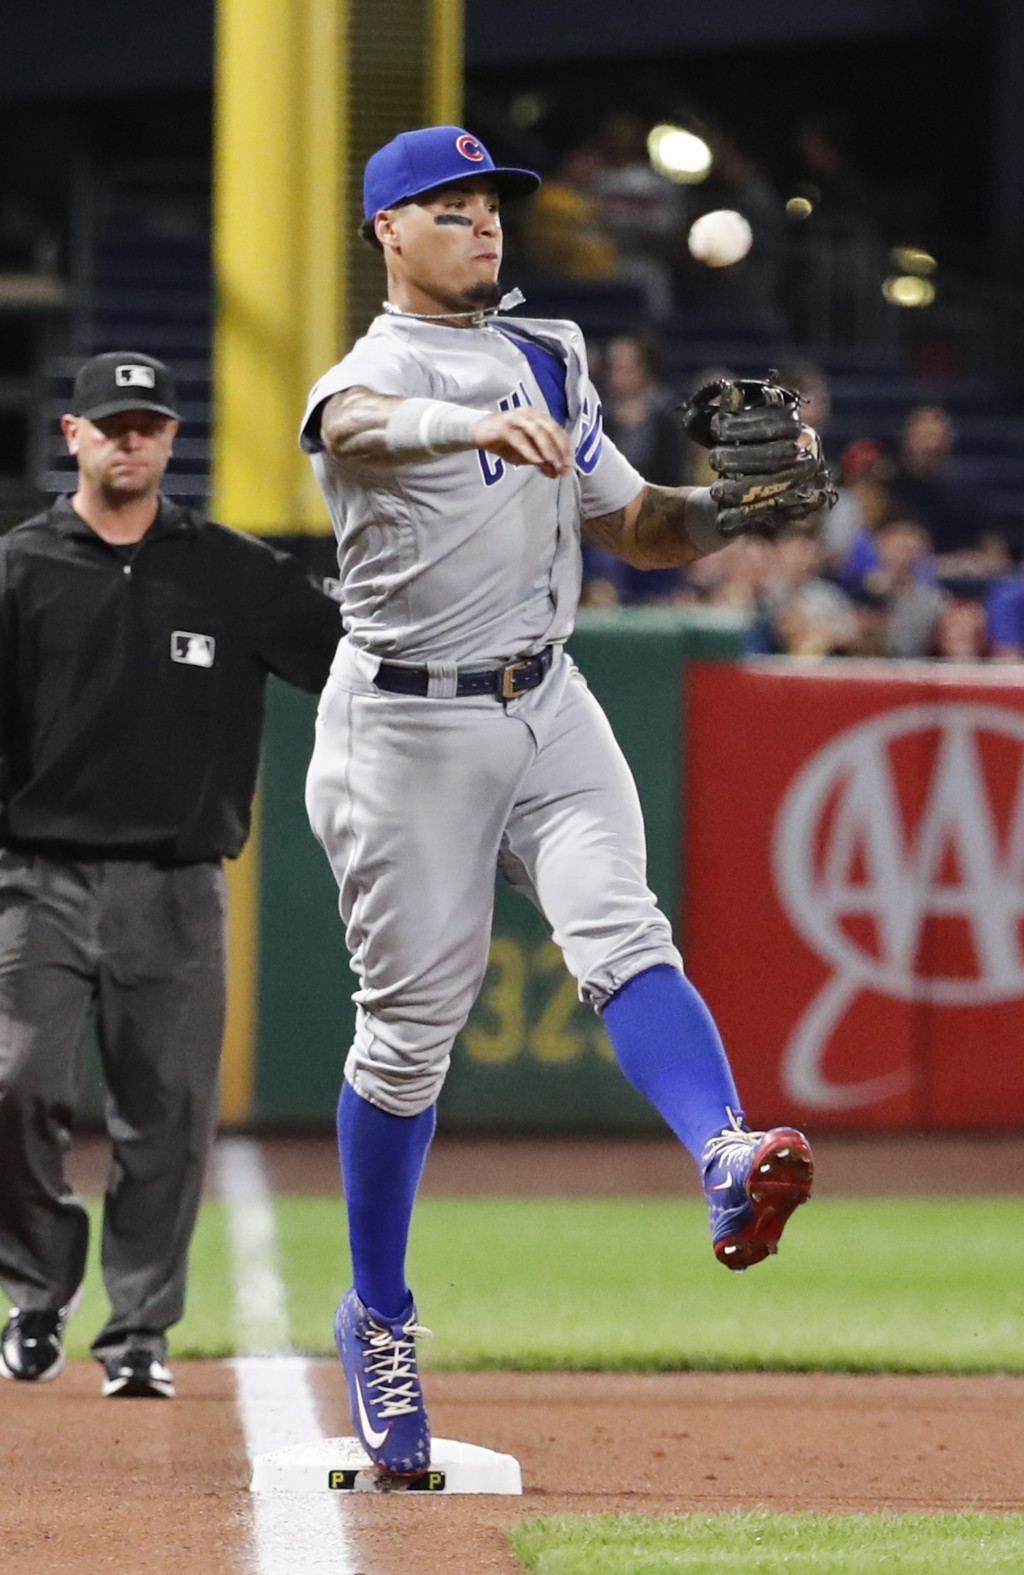 Chicago Cubs third baseman Javier Baez throws to first to complete a double play on Pittsburgh Pirates' David Freese after forcing out Starling Marte ...